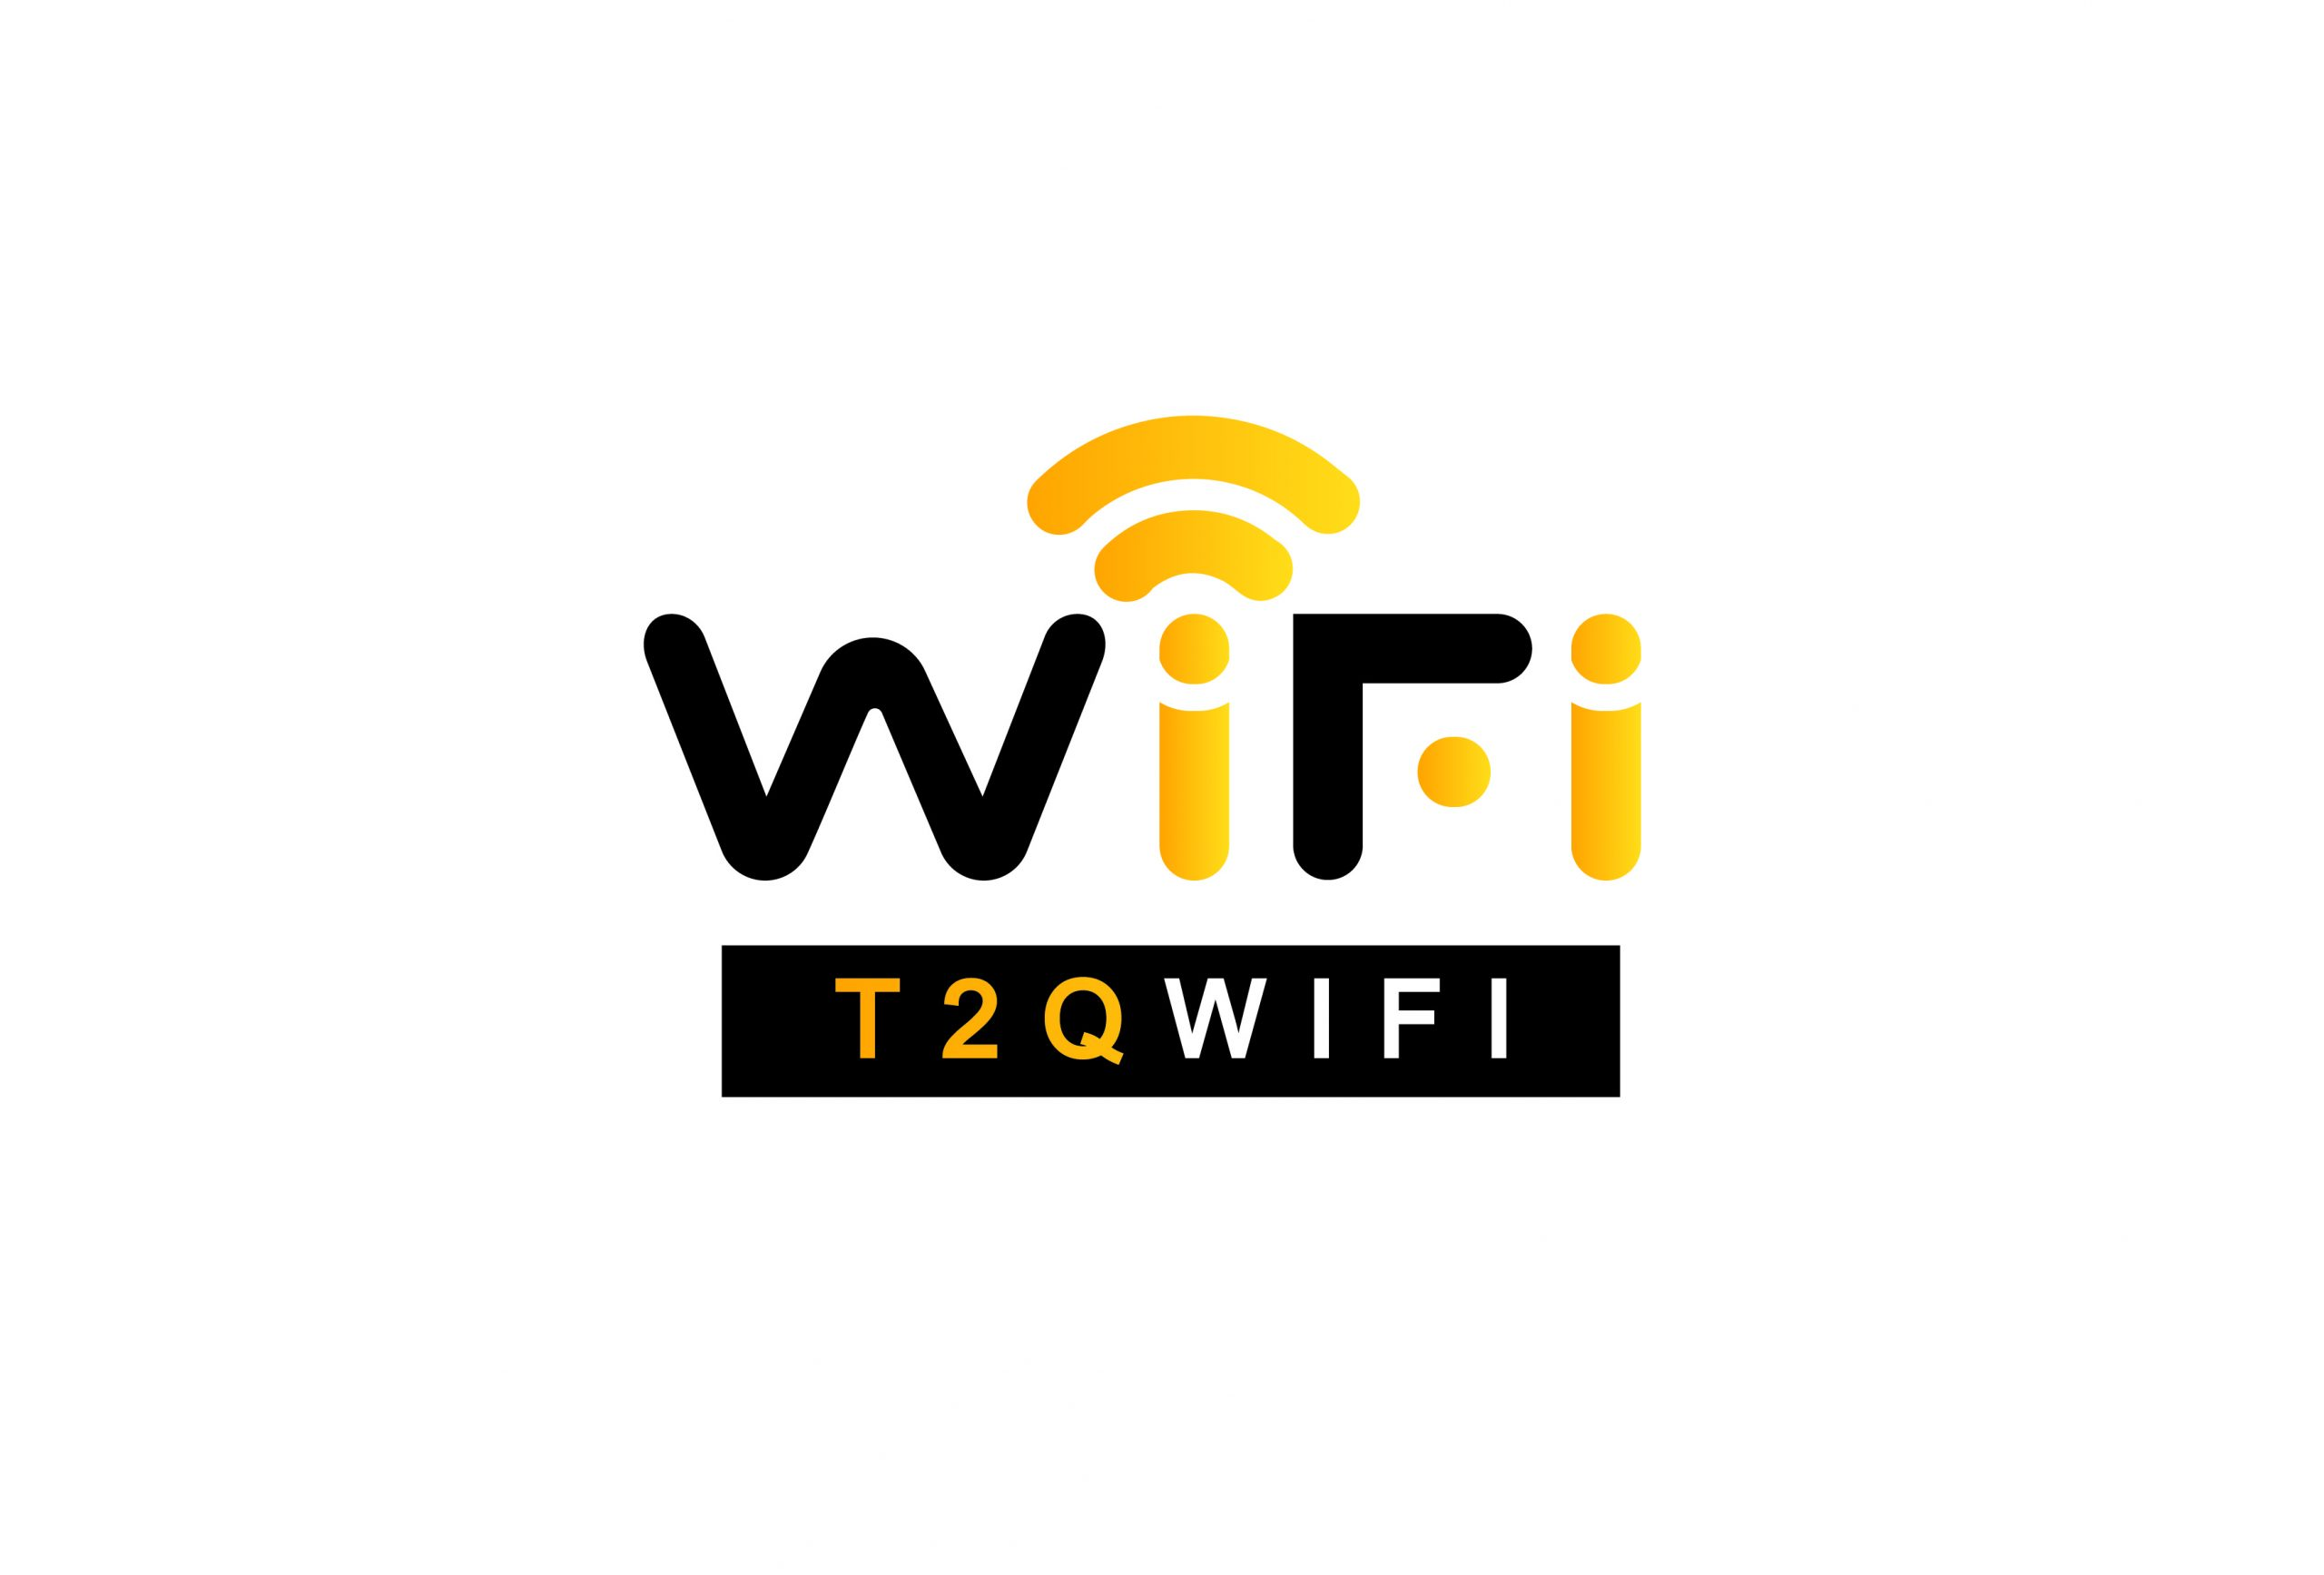 t2qwifi_ds-2ce16h0t-it3f1